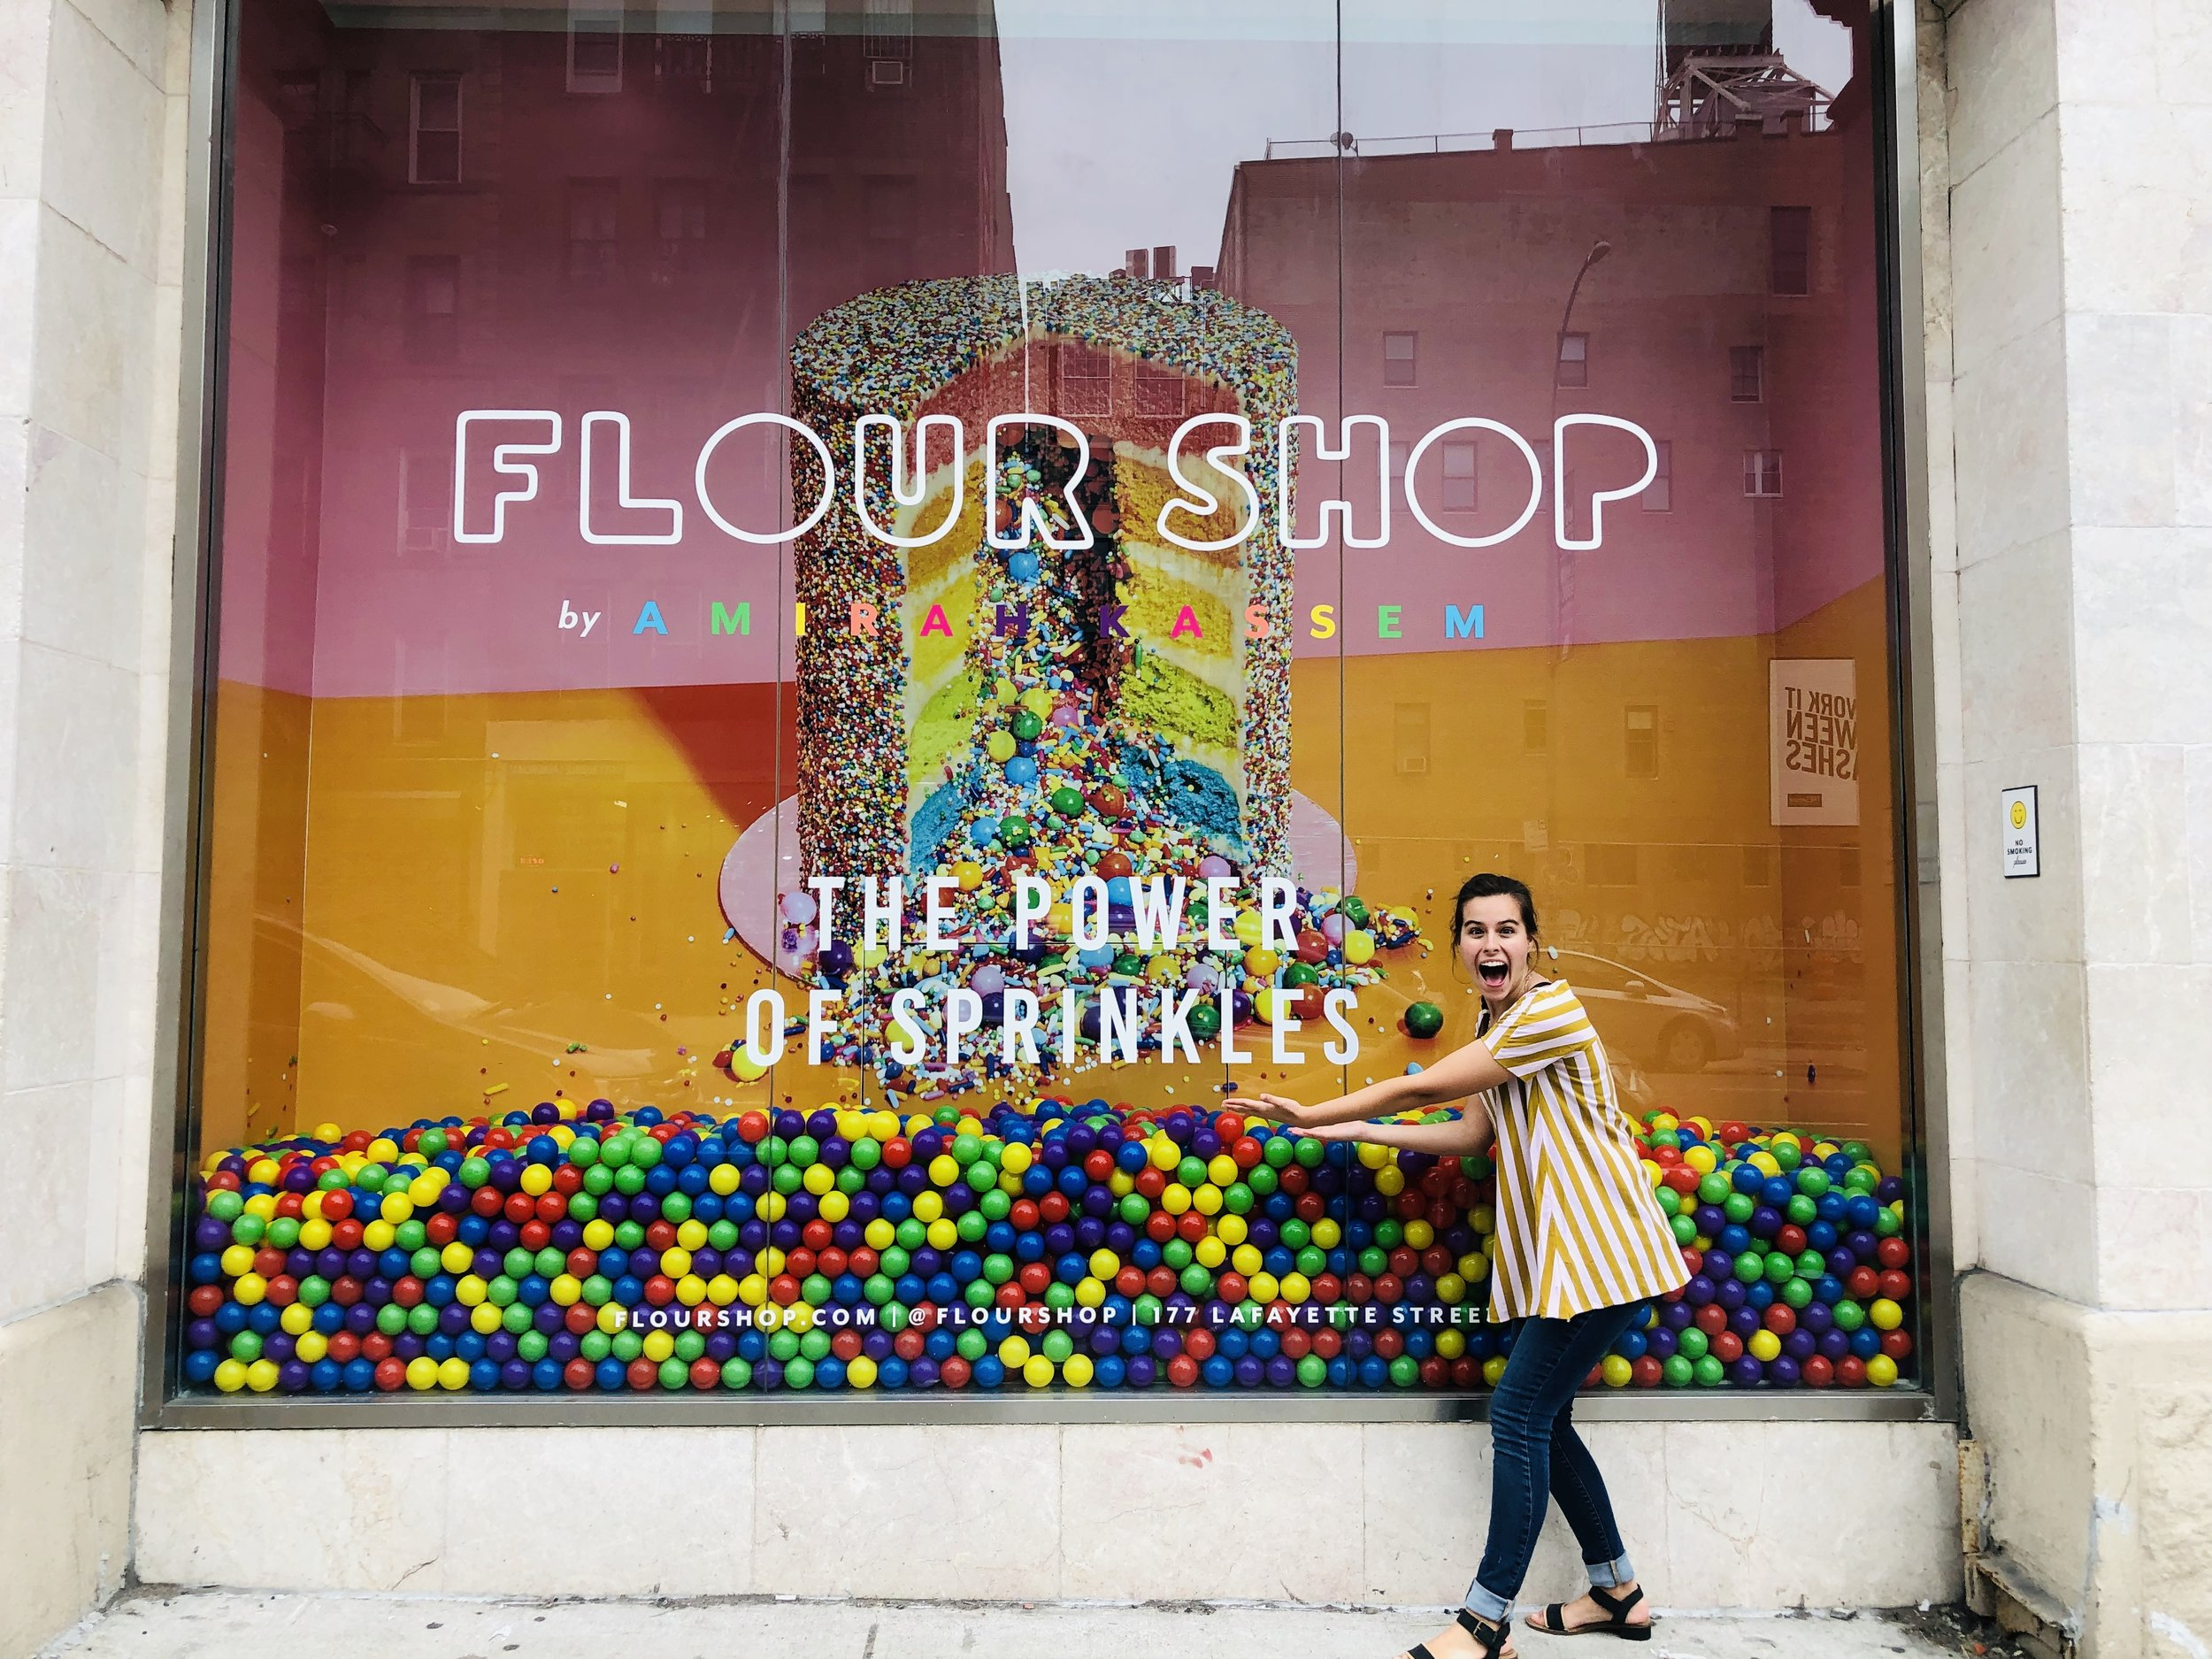 Image of Sara Kreski and Flour Shop, taken by Samantha McHenry. Manhattan, 2019.